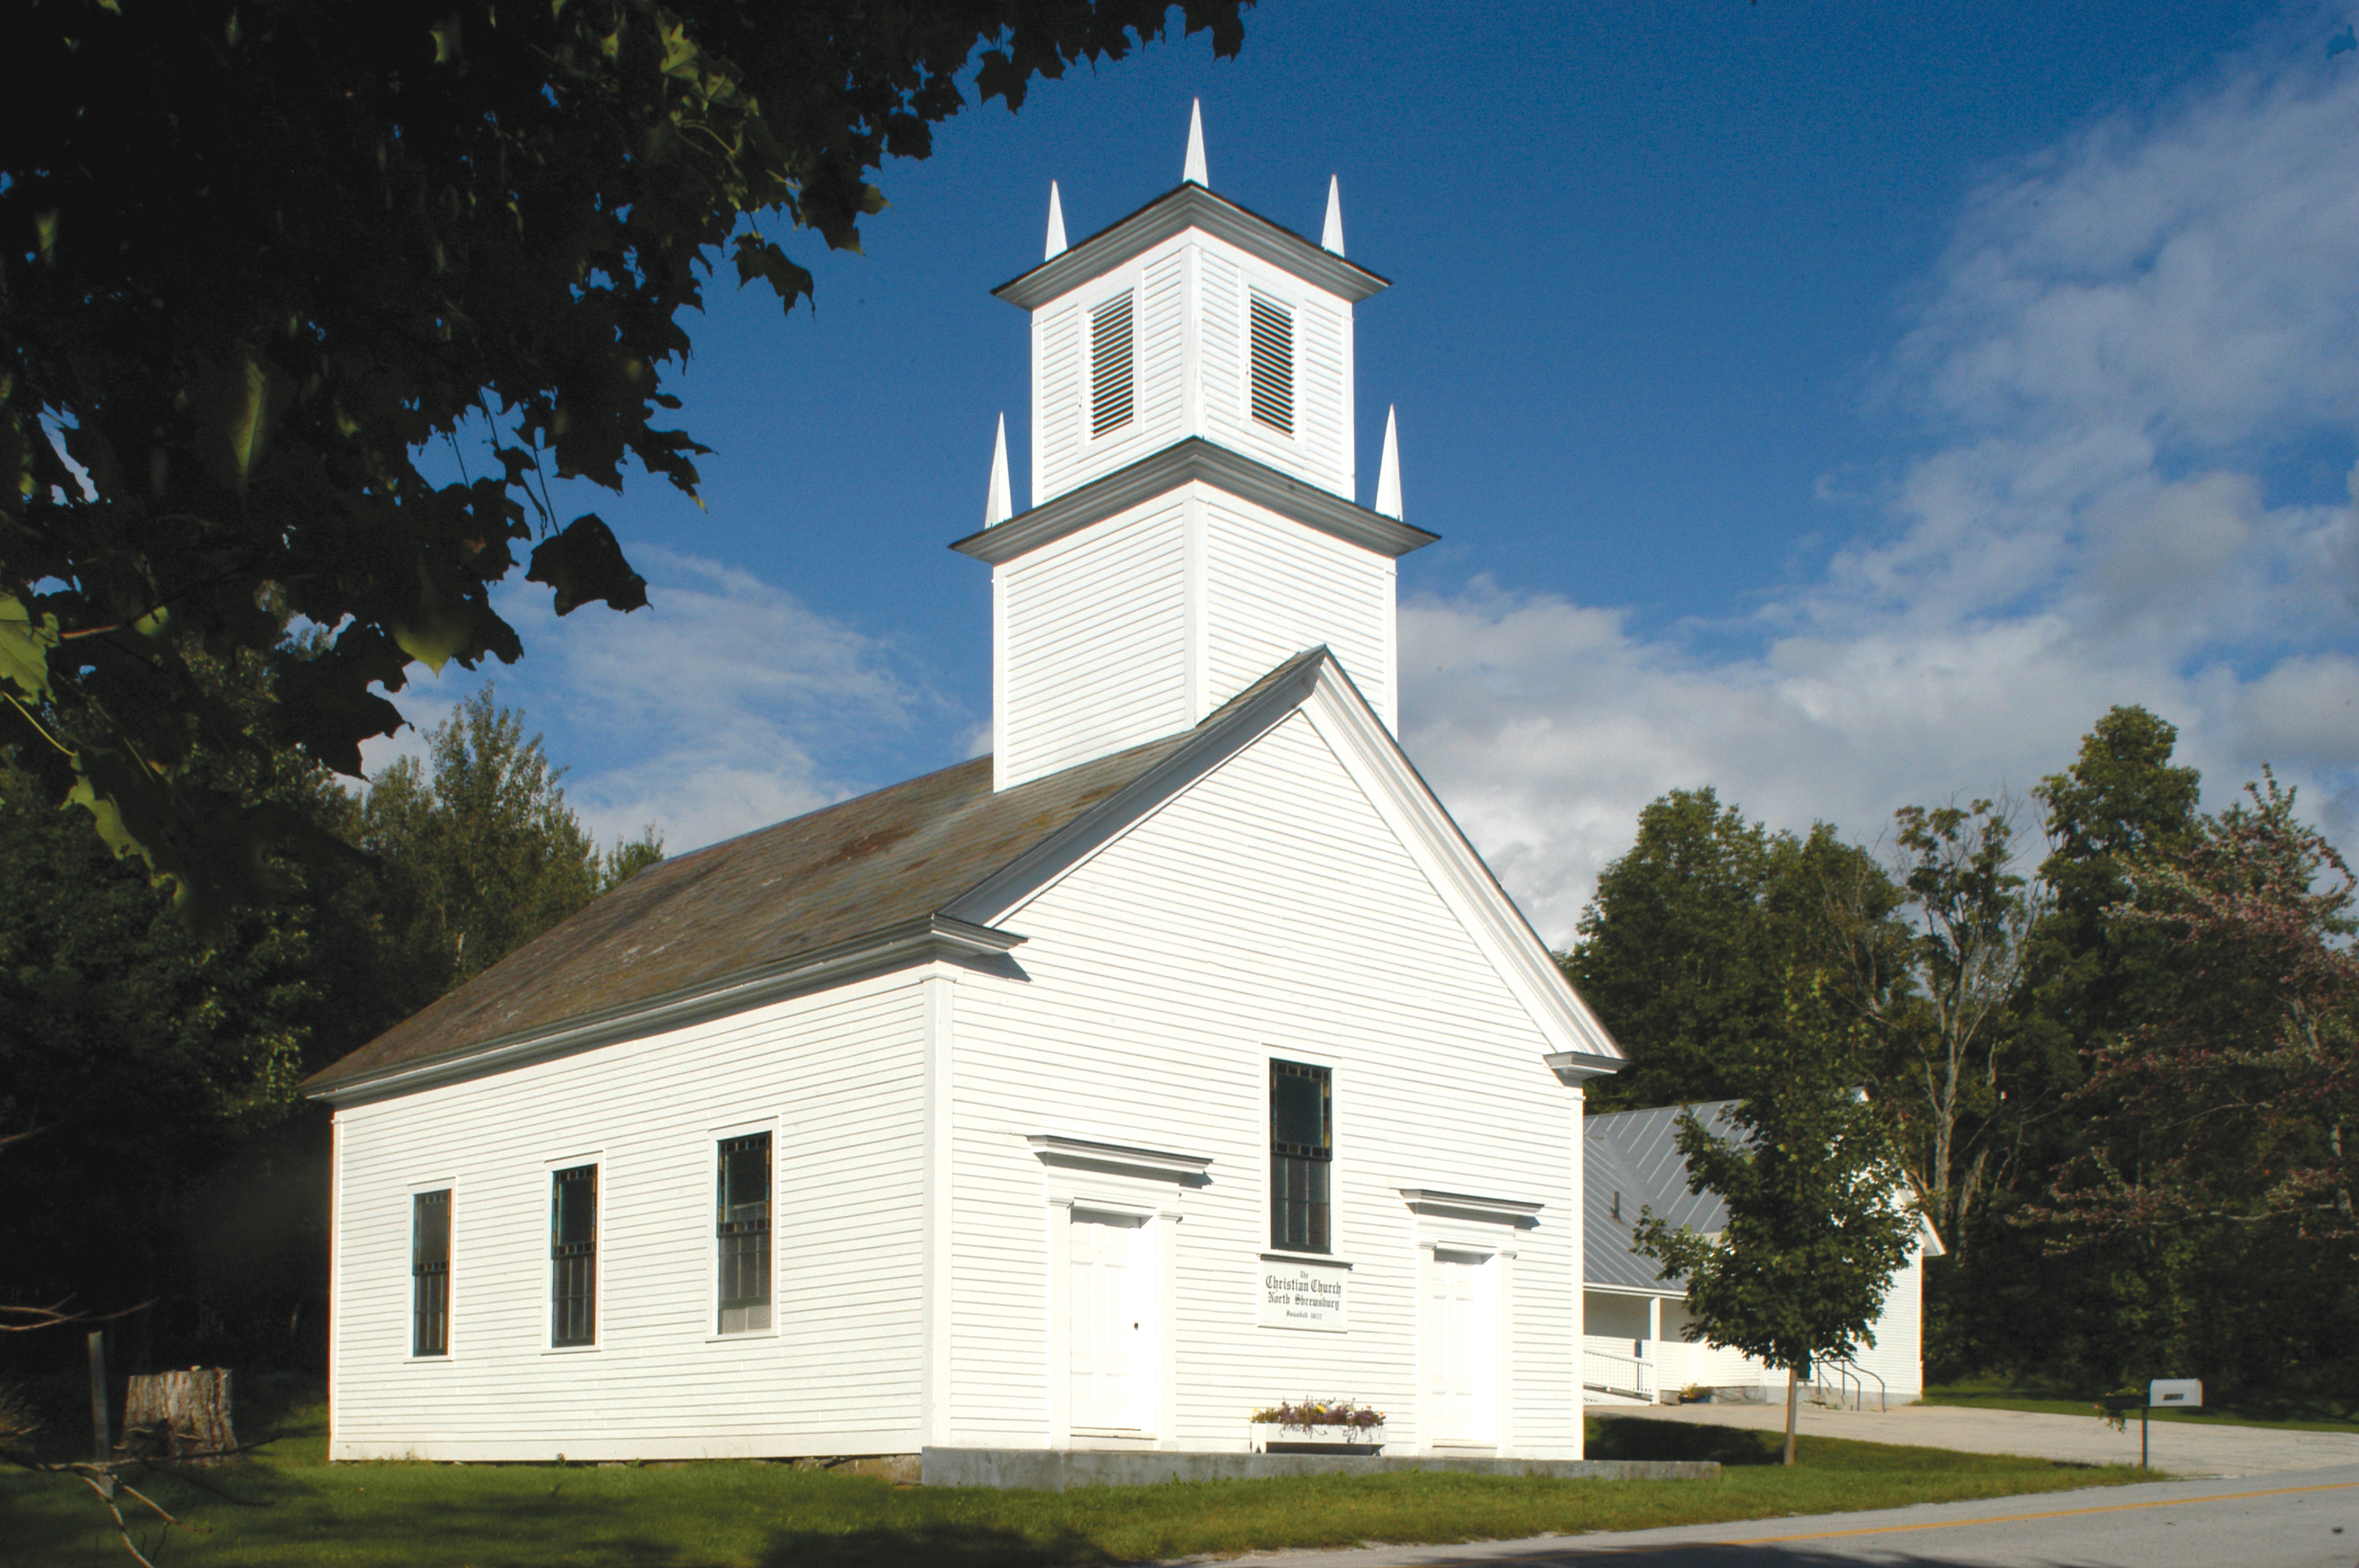 North Shrewsbury Community Church